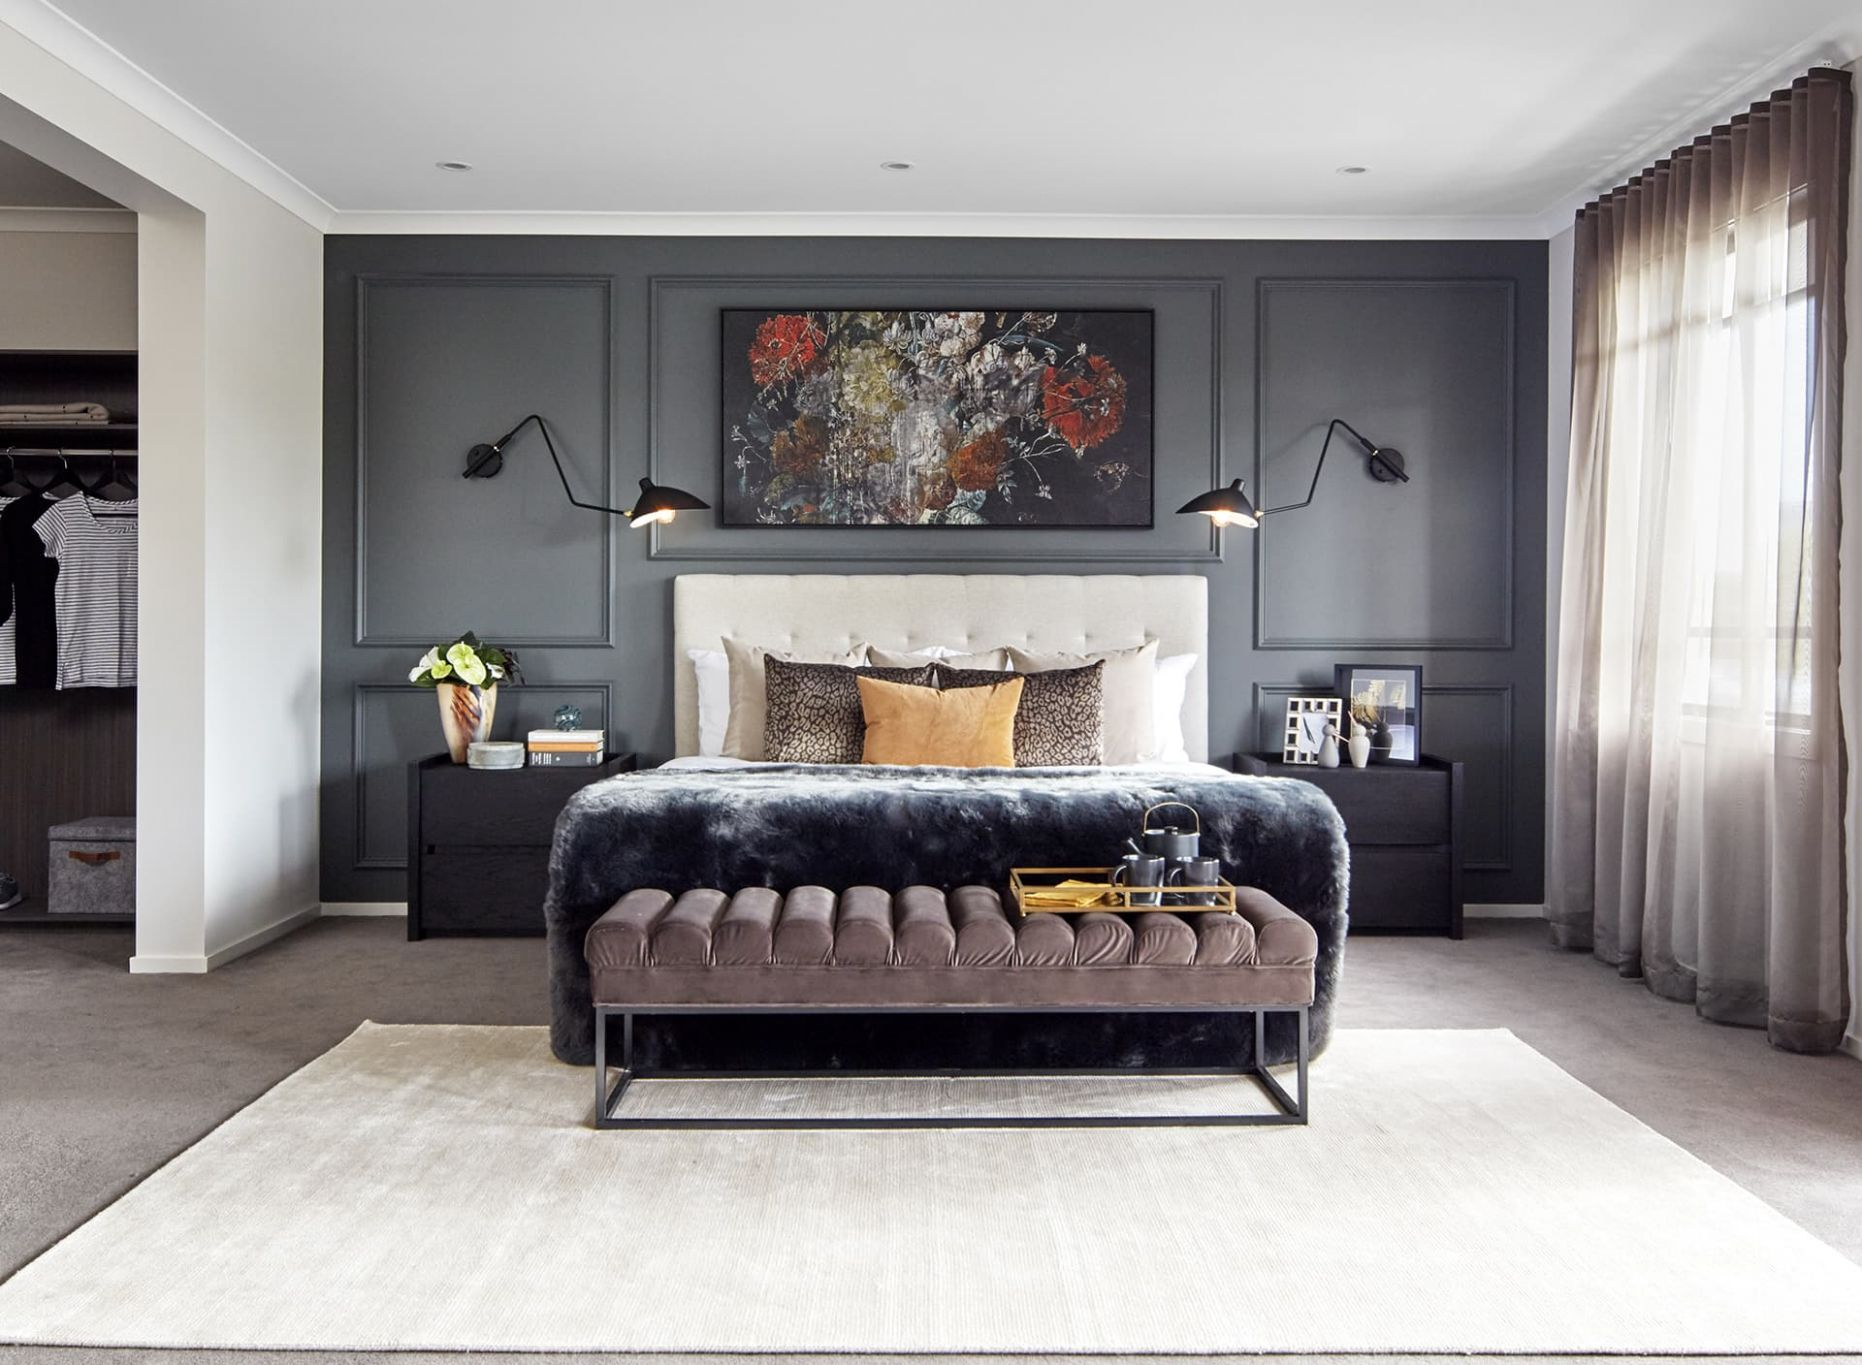 Bedroom Feature Wall Ideas: 8 Easy and Transformative Looks - TLC ..